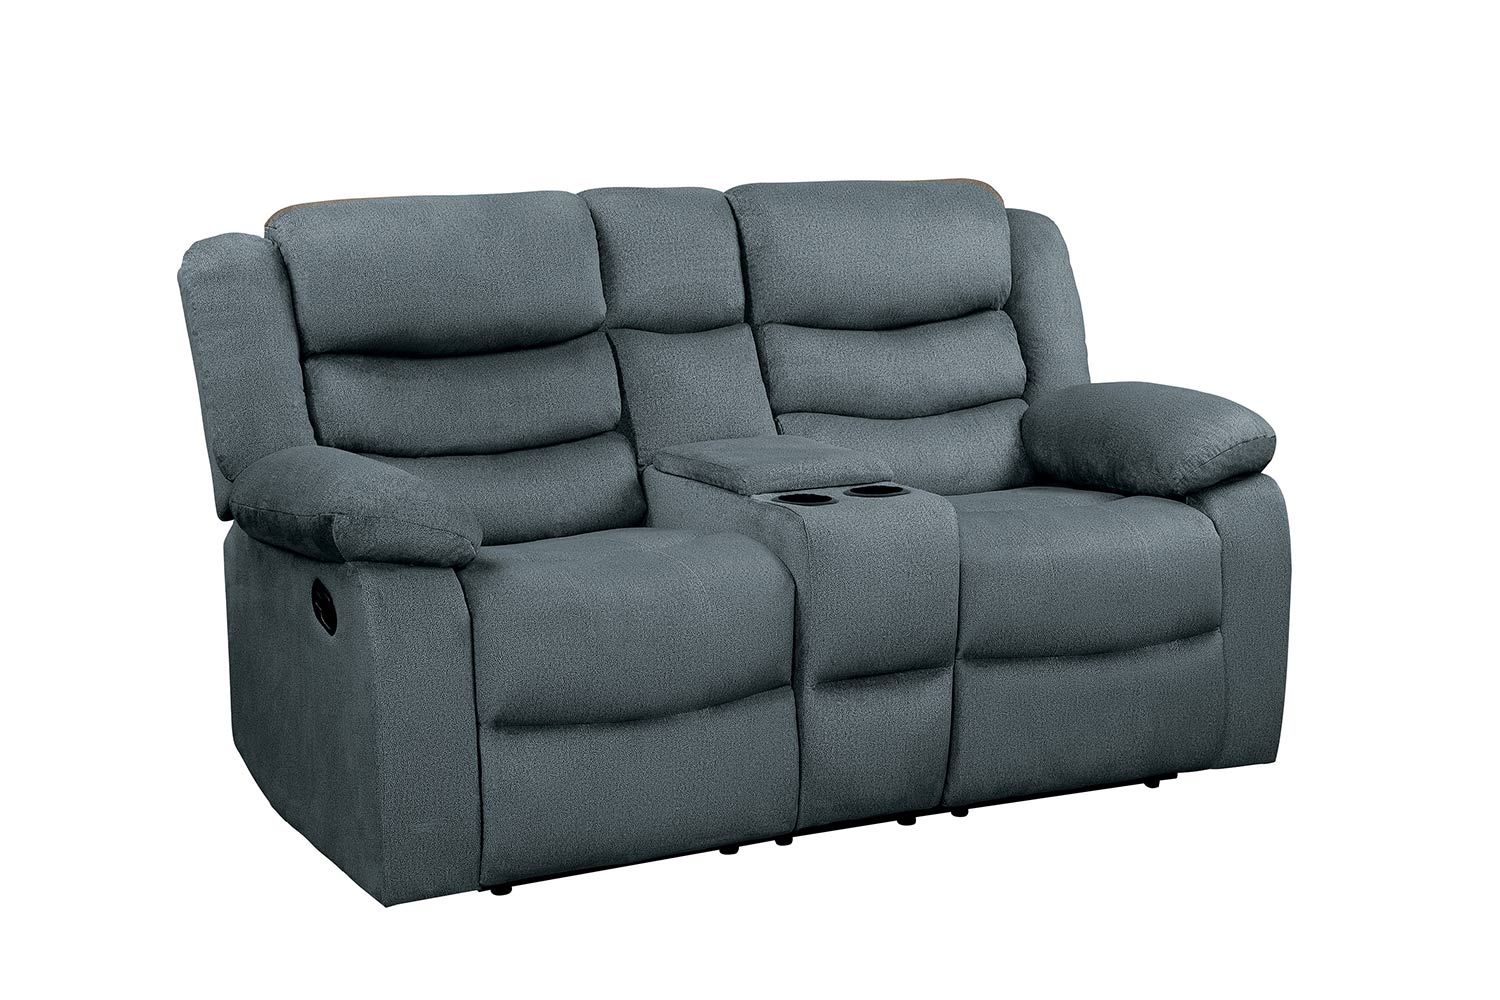 Homelegance Discus Double Reclining Love Seat with Center Console - Gray